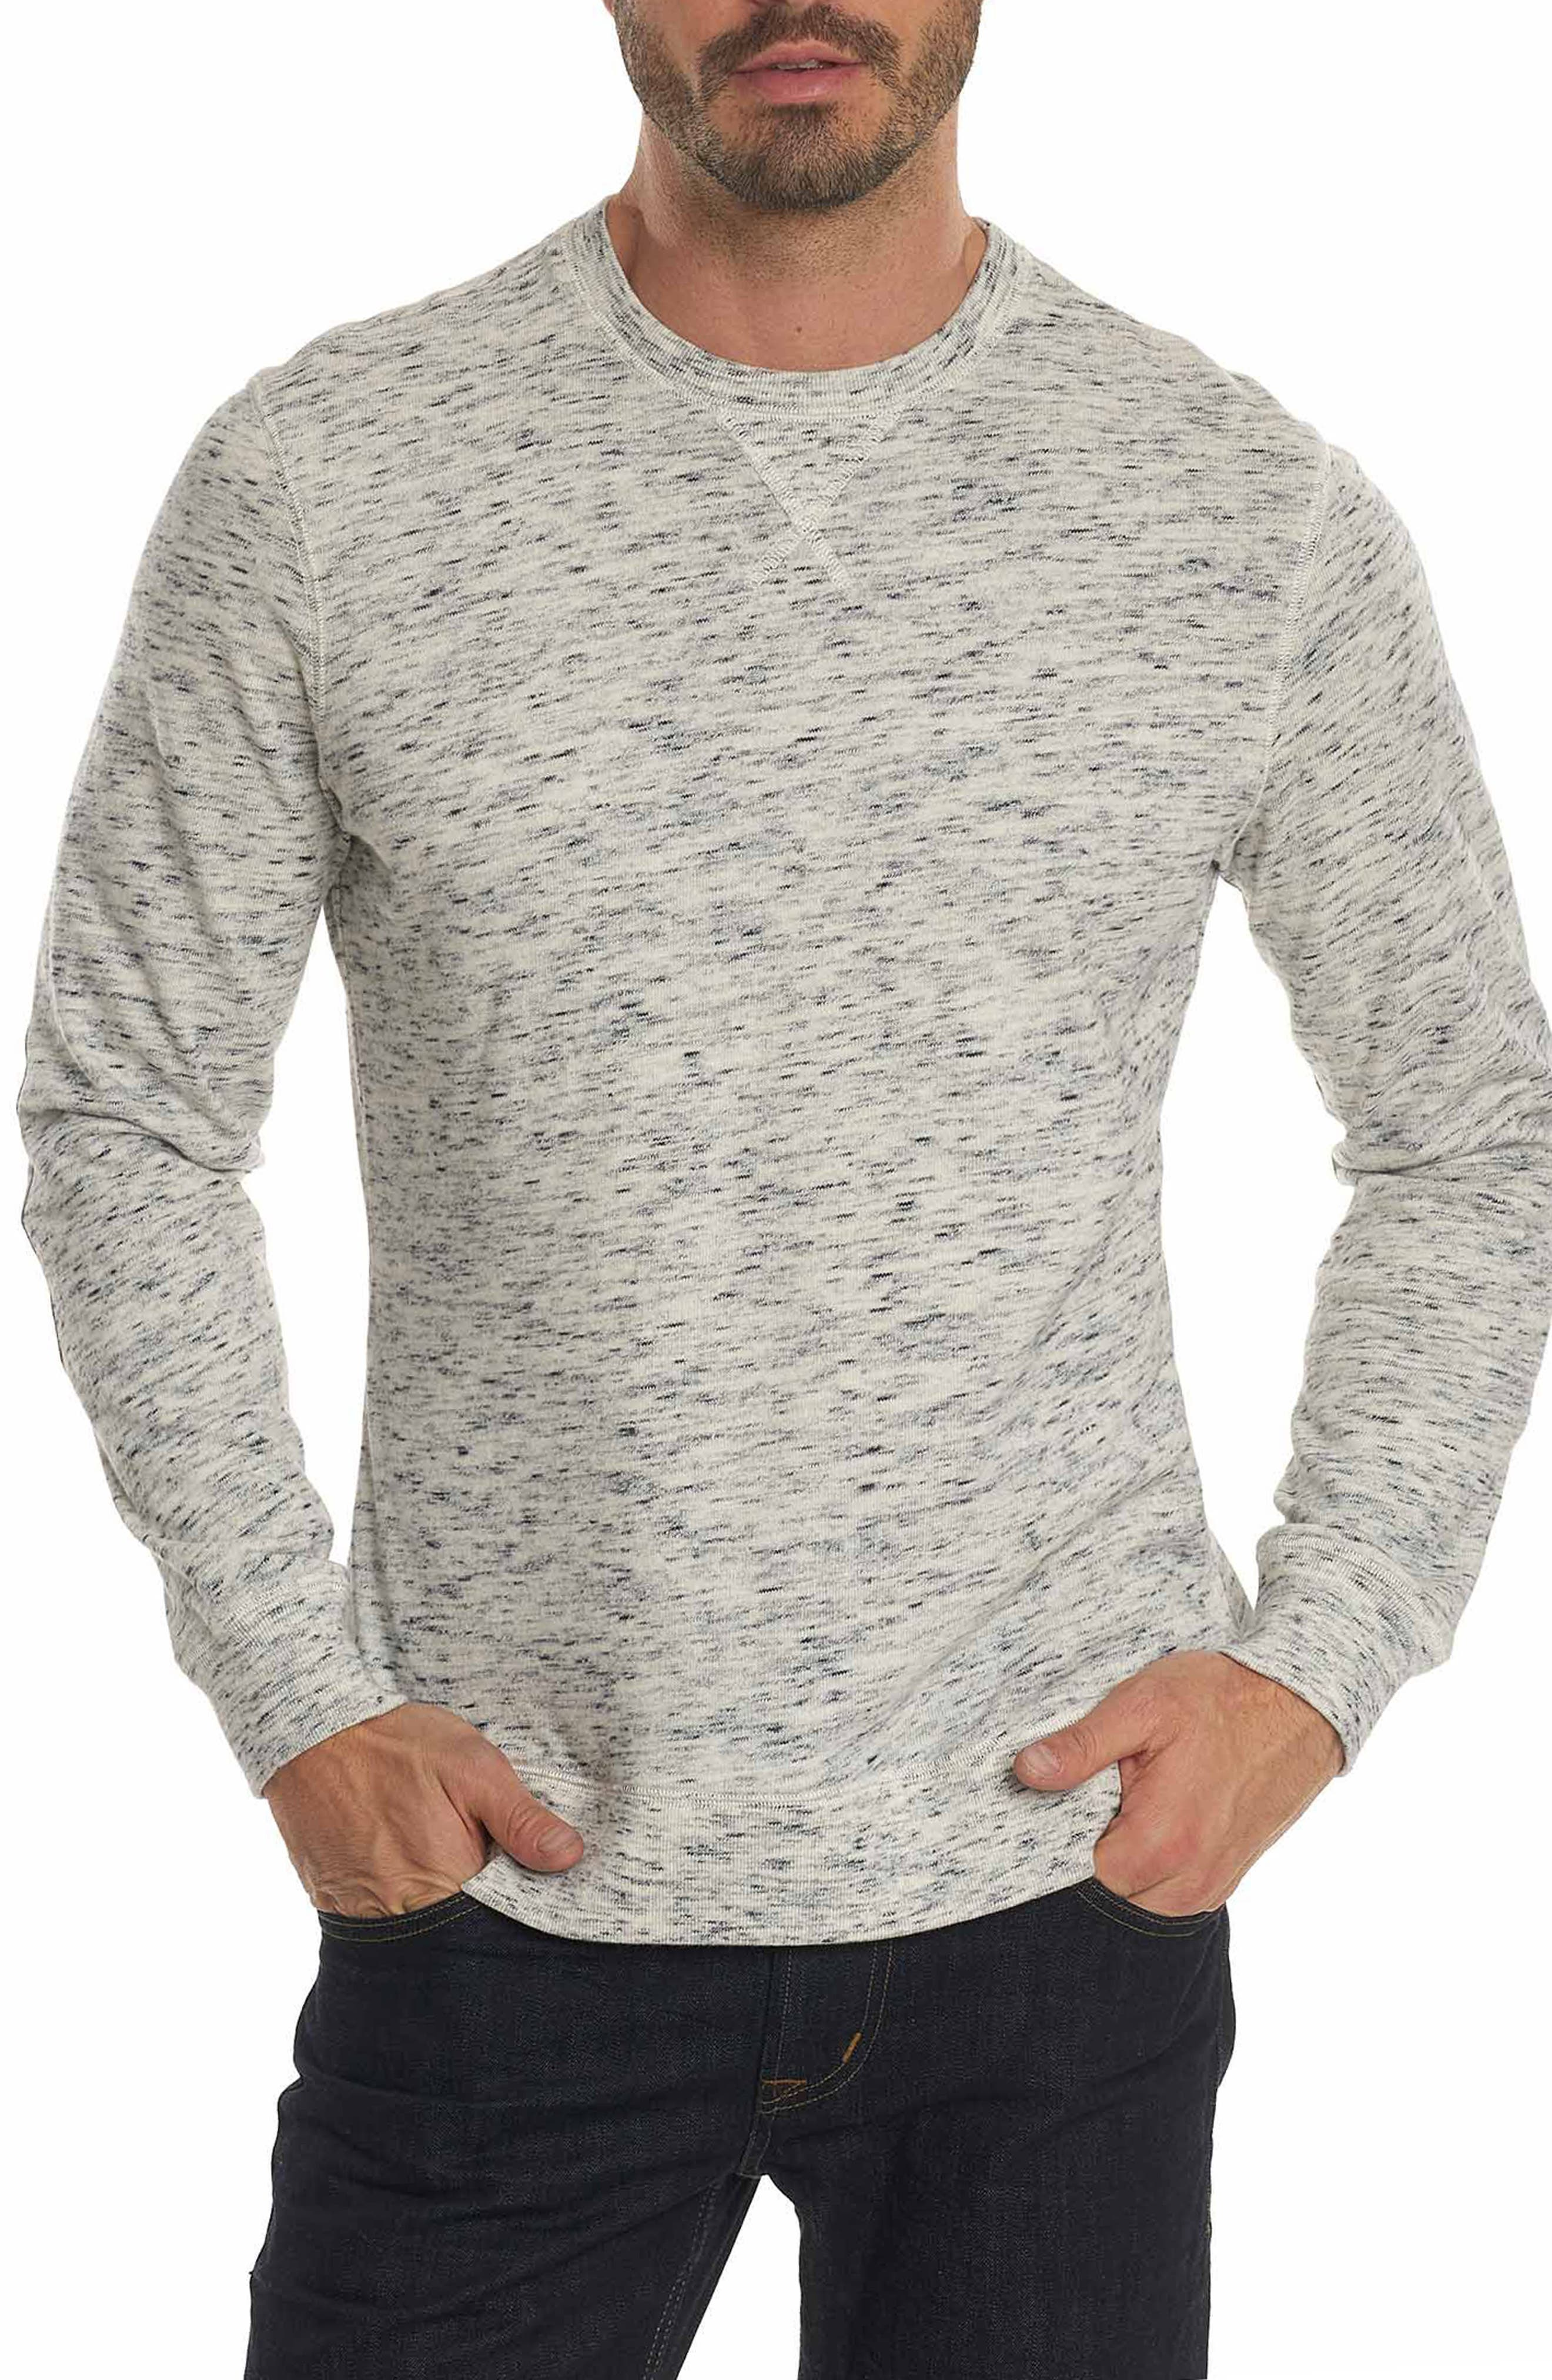 Alternate Image 1 Selected - Robert Graham Endurance Elbow Patch Sweatshirt